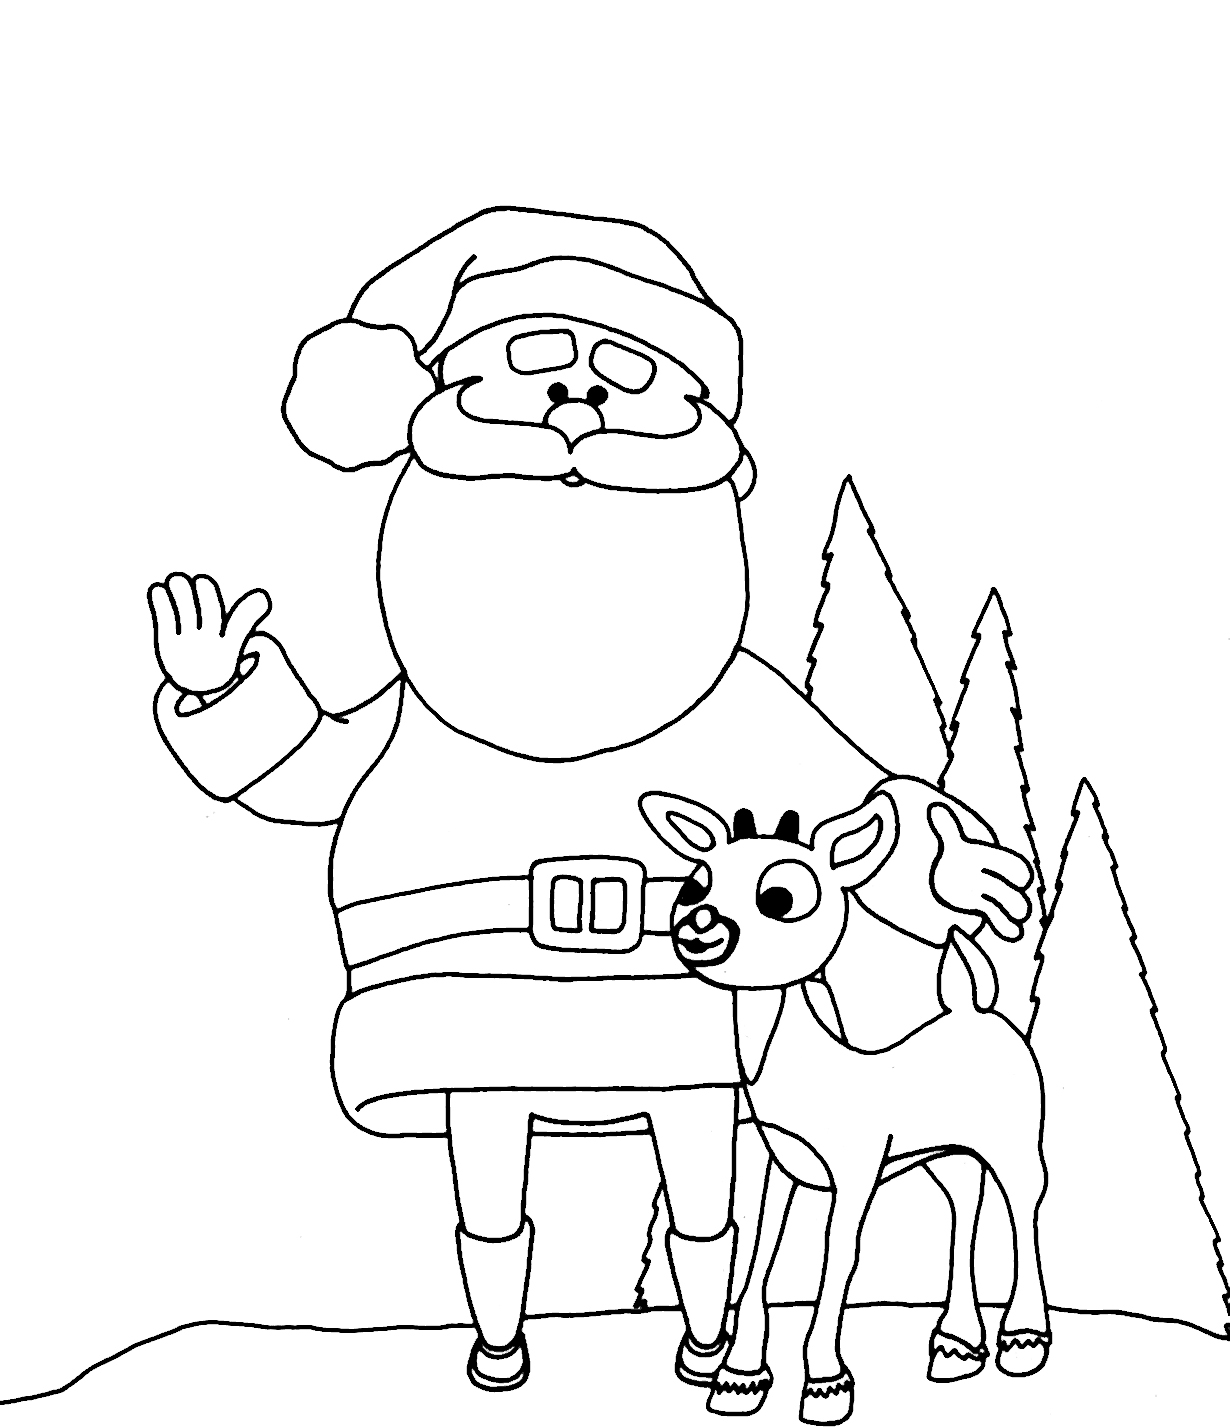 Rudolph Christmas Coloring Pages.Santa And Rudolph Coloring Pages At Getdrawings Com Free